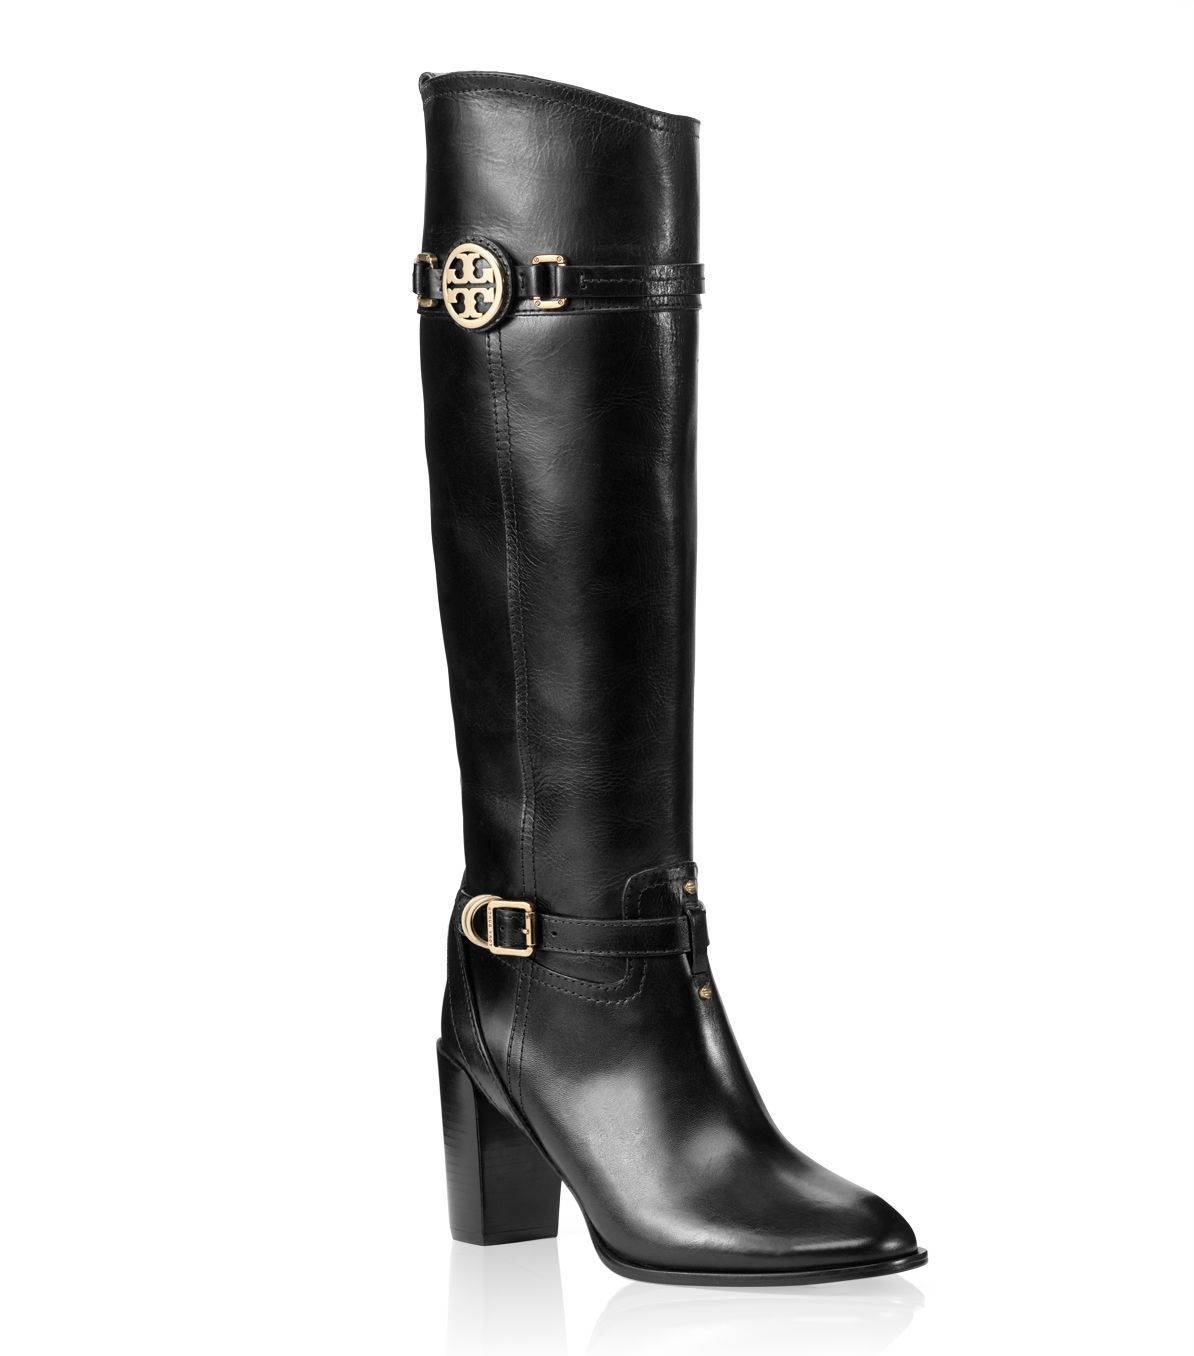 8e4a440840b9 italy tory burch calista leather riding boot brown 65122 26379